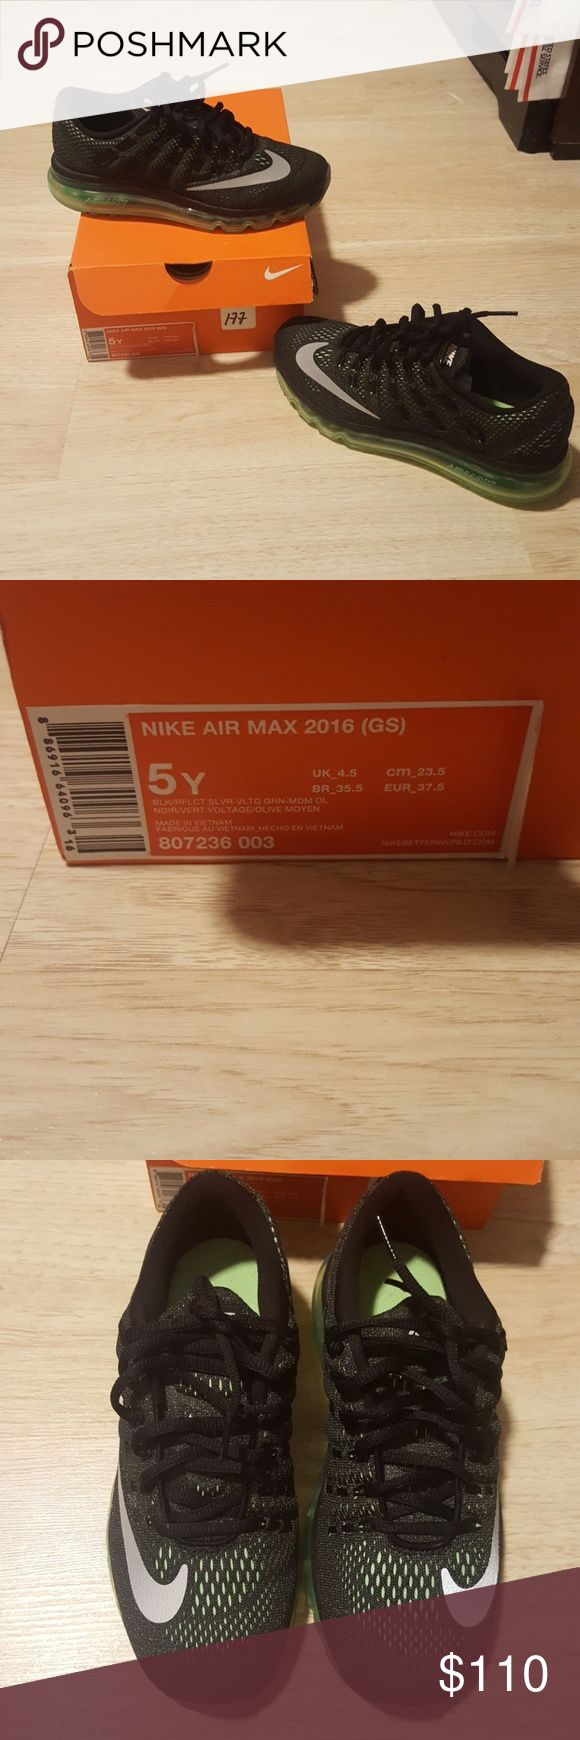 Nike air max 2016 Nike air max size 5 in boys (womens size 7 ) only worn once. Like new.  Comes with original box. Nike Shoes Sneakers